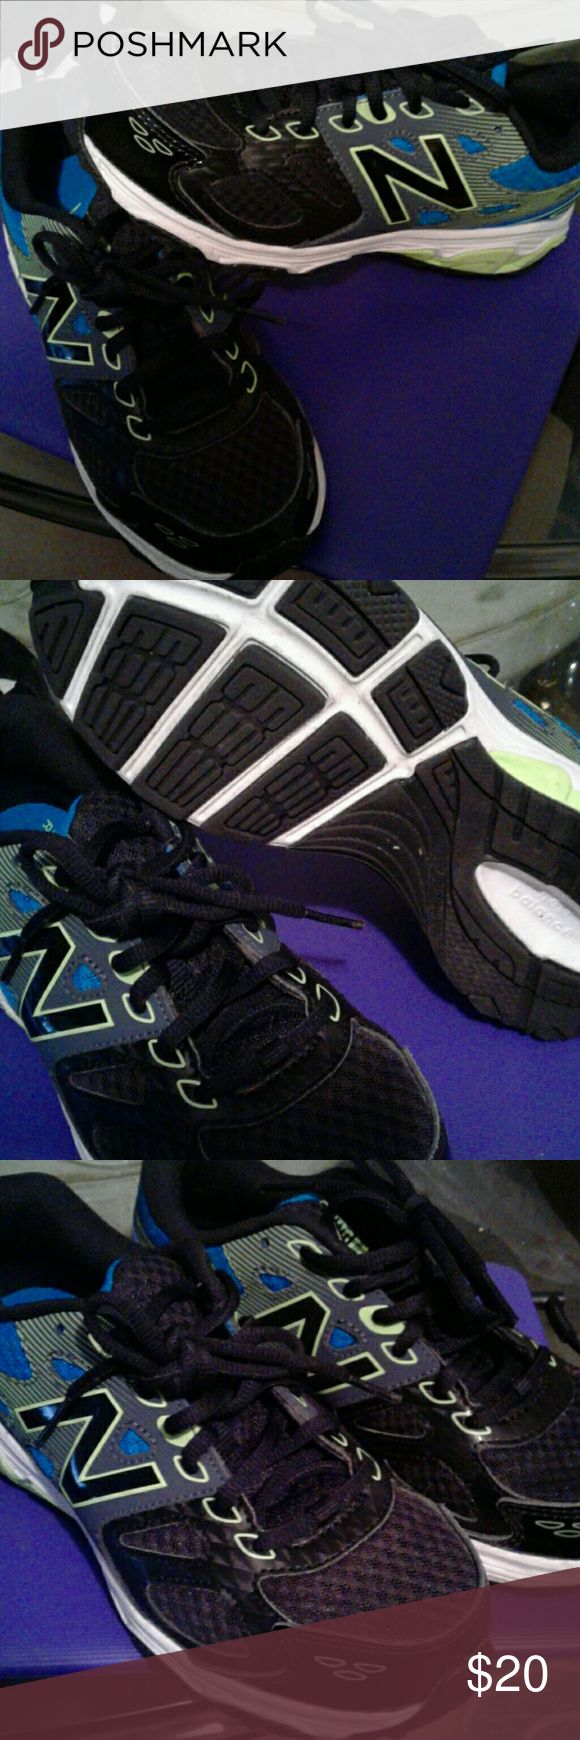 NEW BALANCE Kids black, neon green and royal blue. Black laces. New Balance Shoes Sneakers